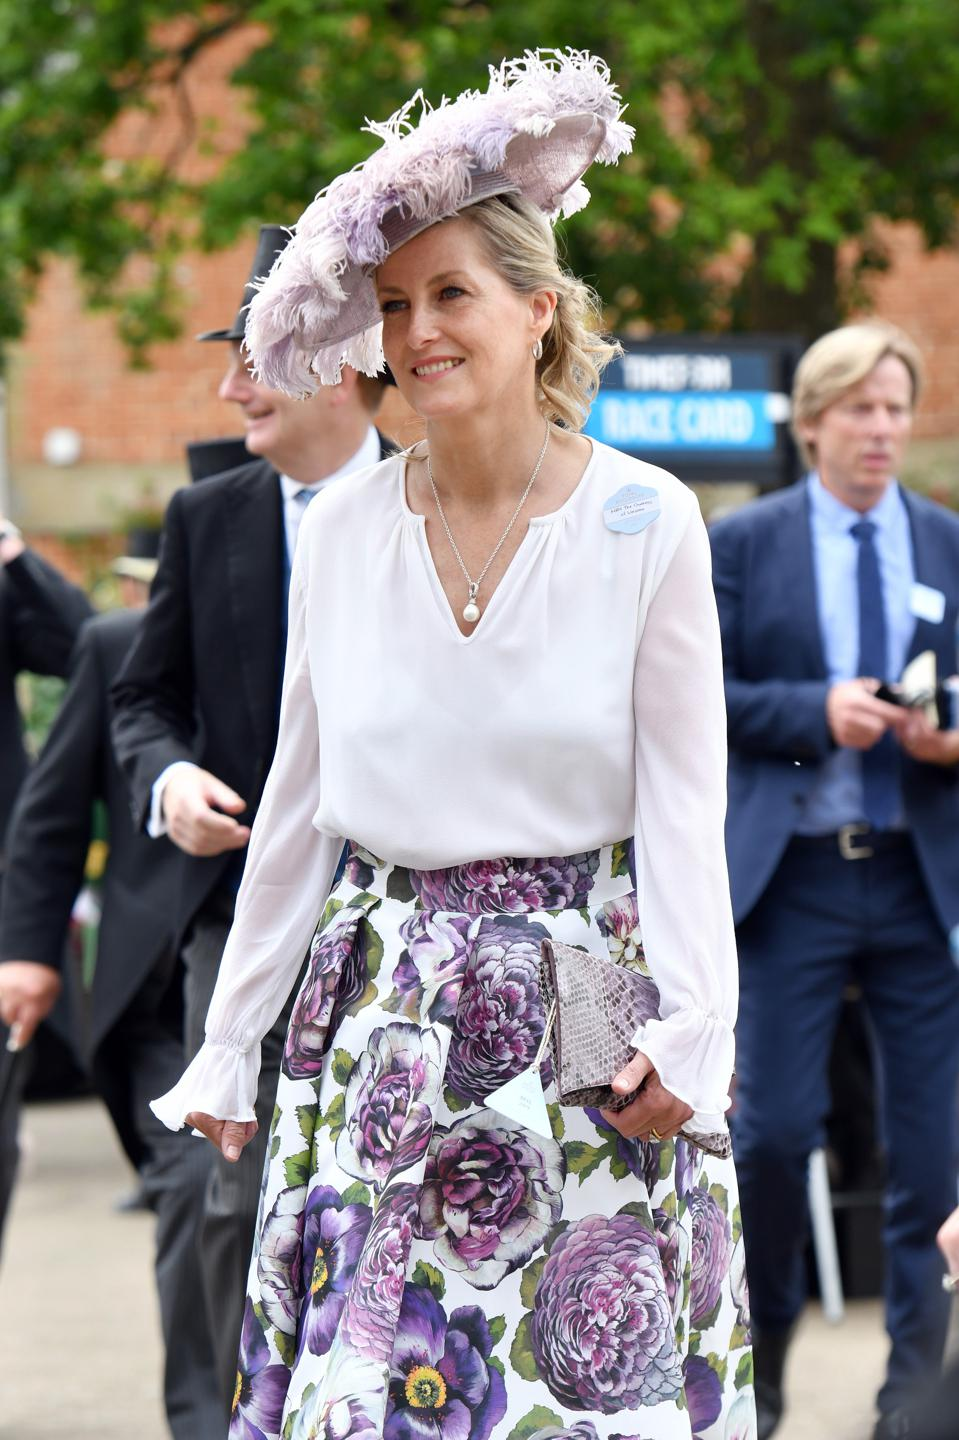 Sophie, Countess of Wessex at 2021 Royal Ascot - Fashion, Day Two